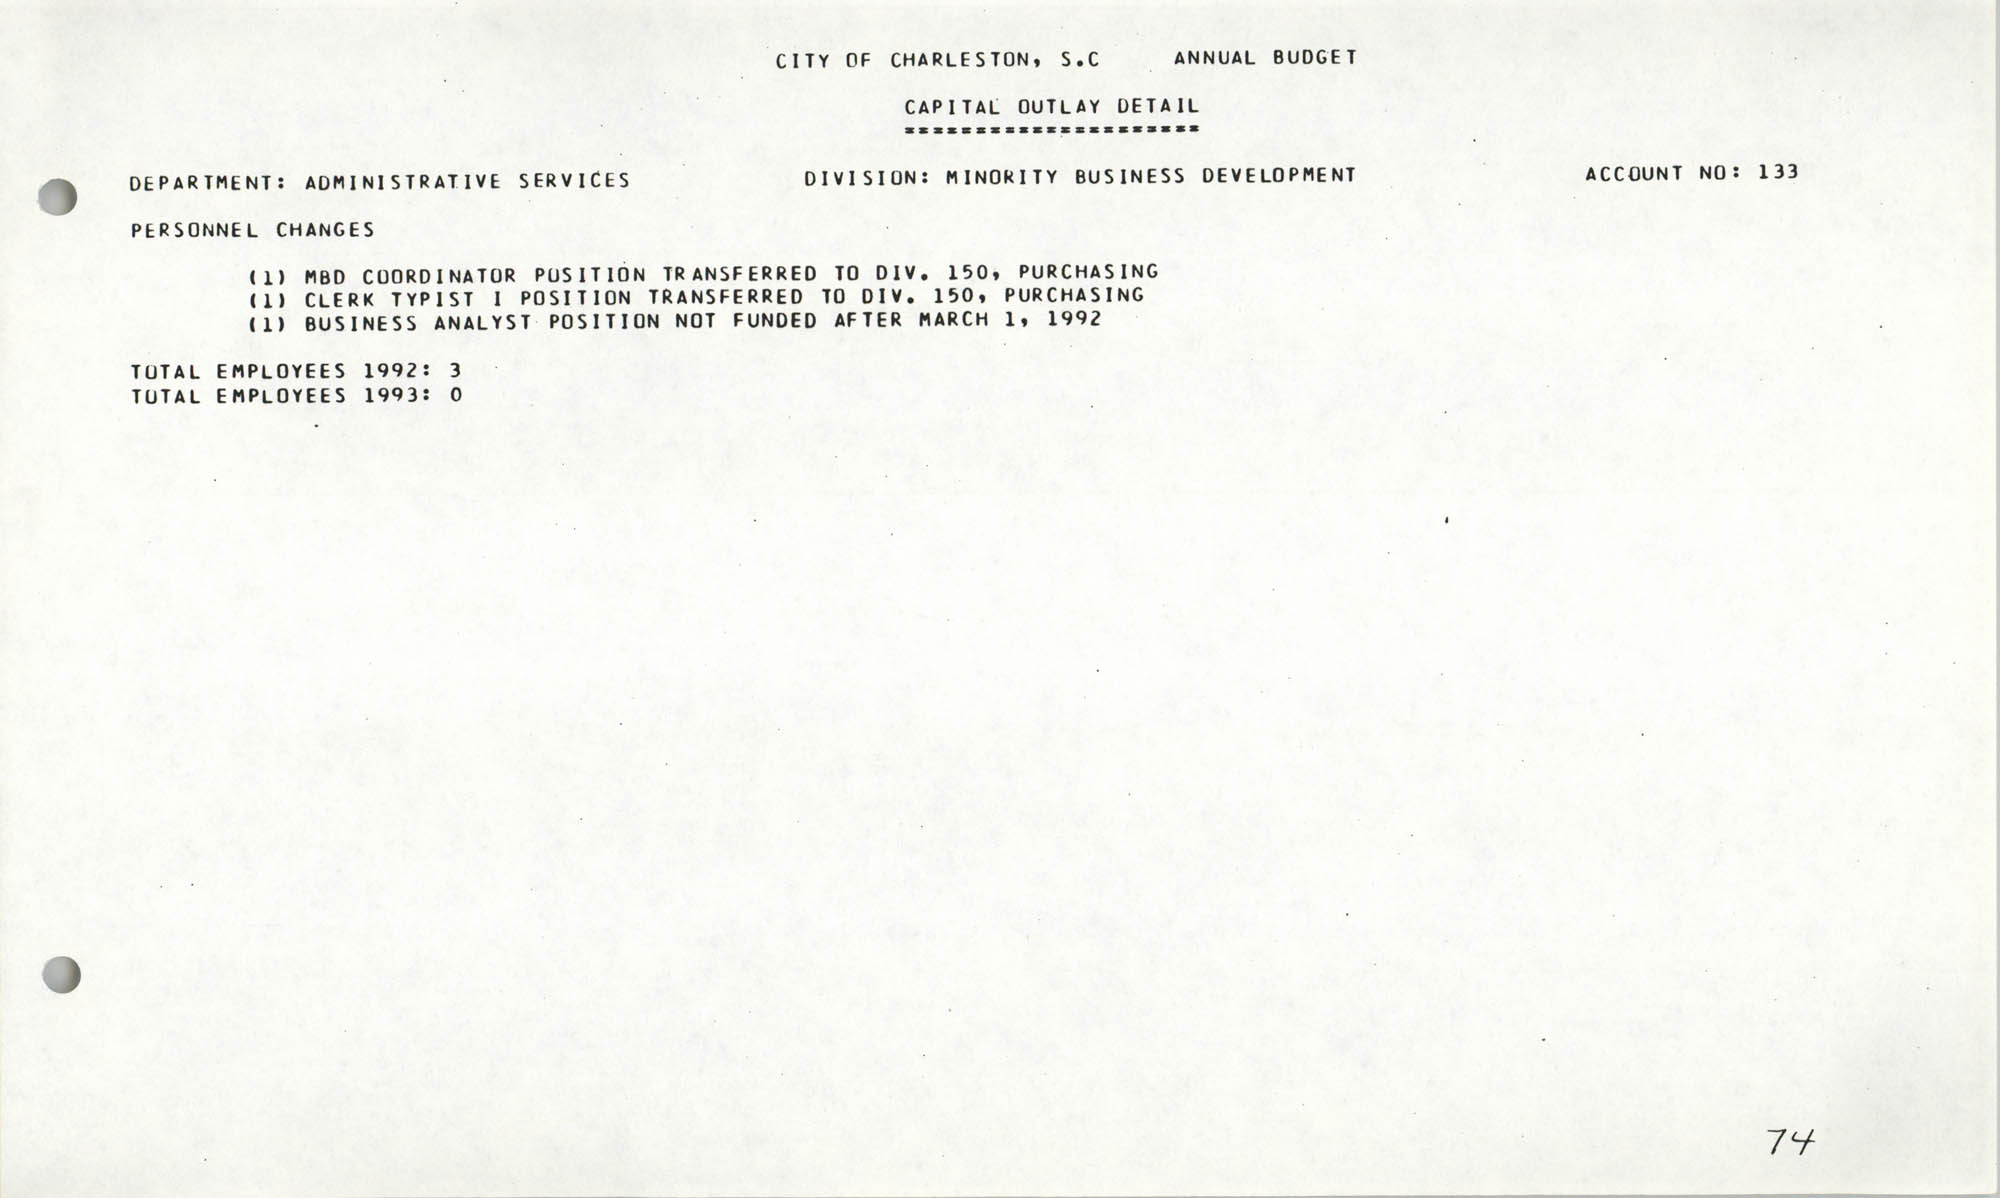 The City Council of Charleston, South Carolina, 1993 Budget, Page 74